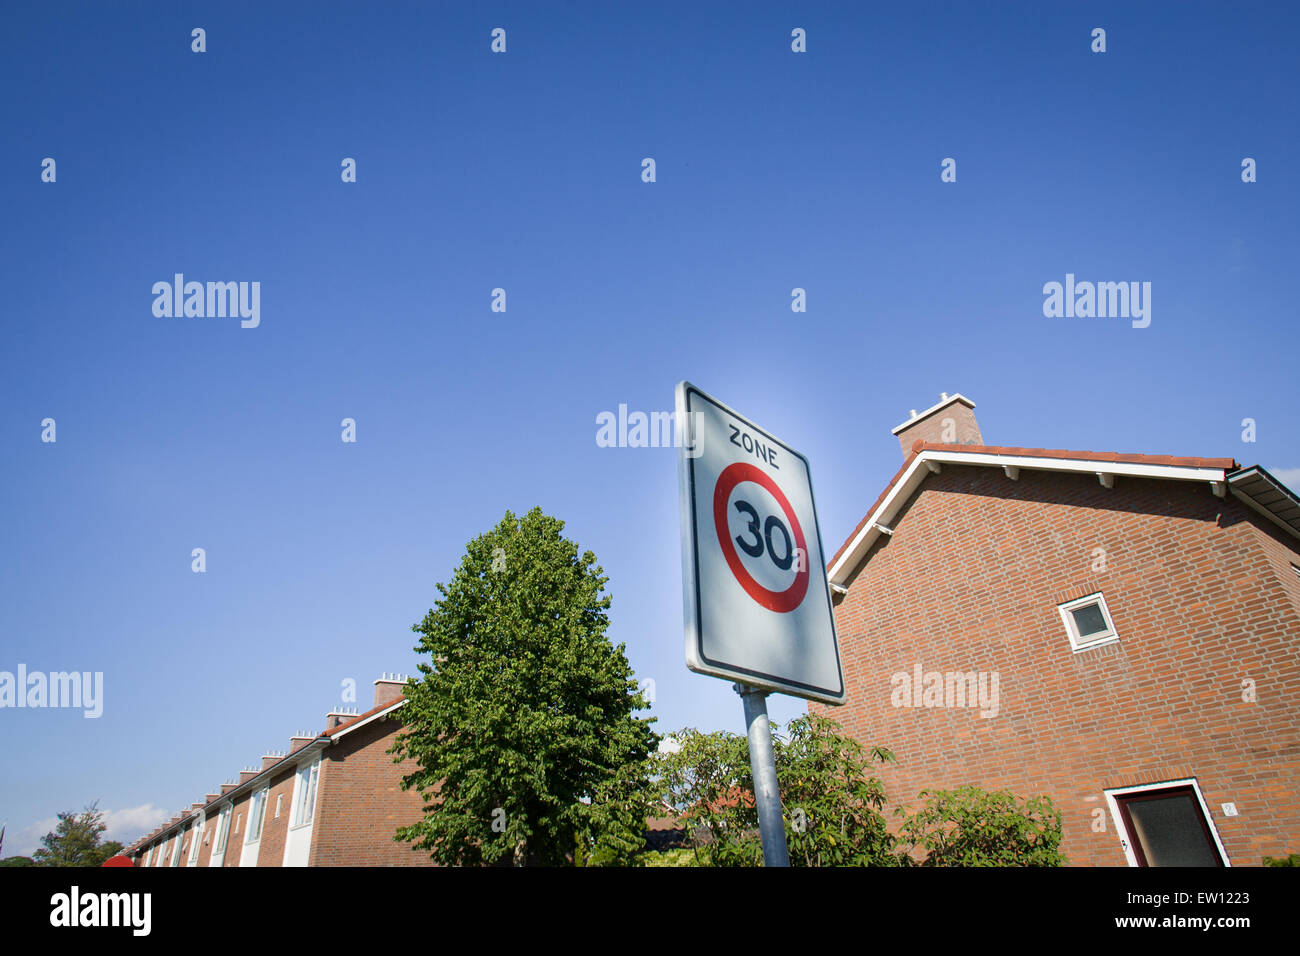 A sign showing a 30 kilometer per hour speed limit in a residential zone is seen. - Stock Image